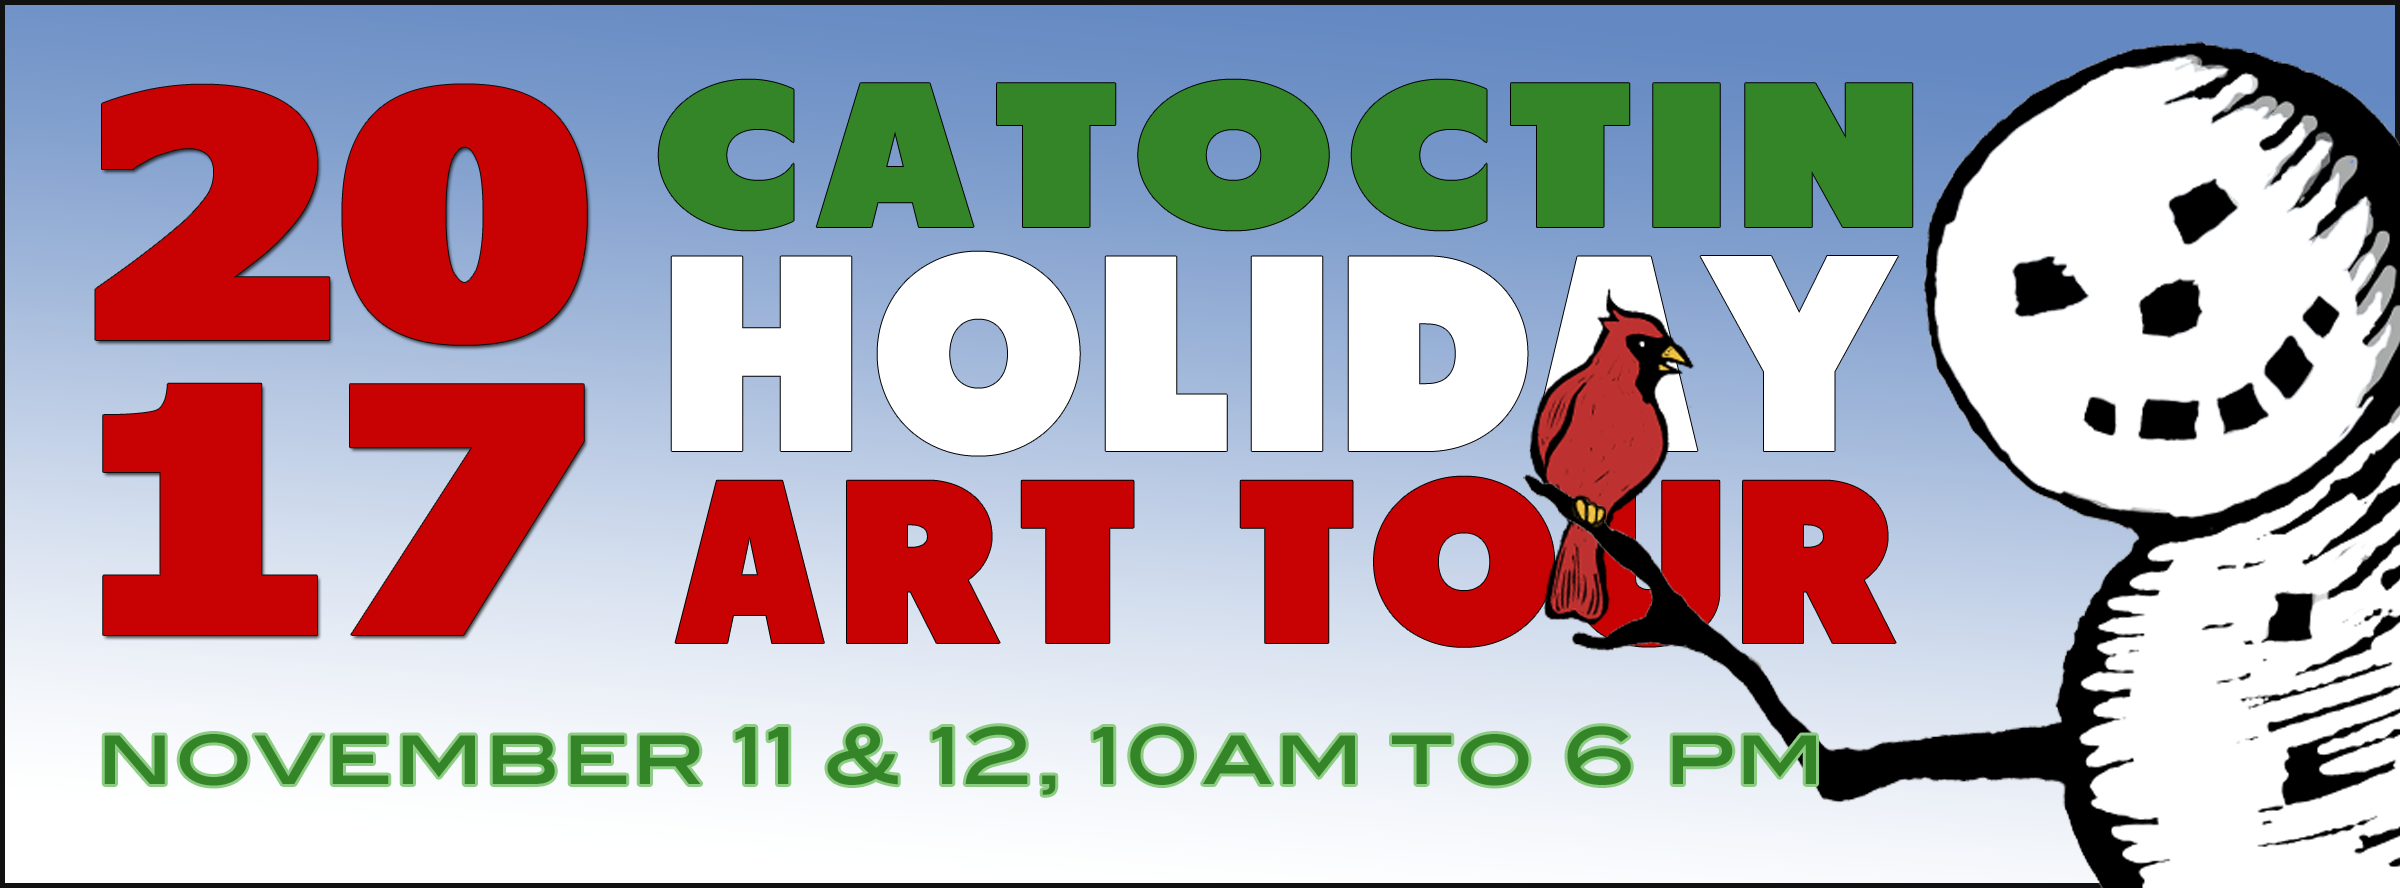 Catoctin Holiday Art Tour - November 11-12, 2017 - 10am-6pm